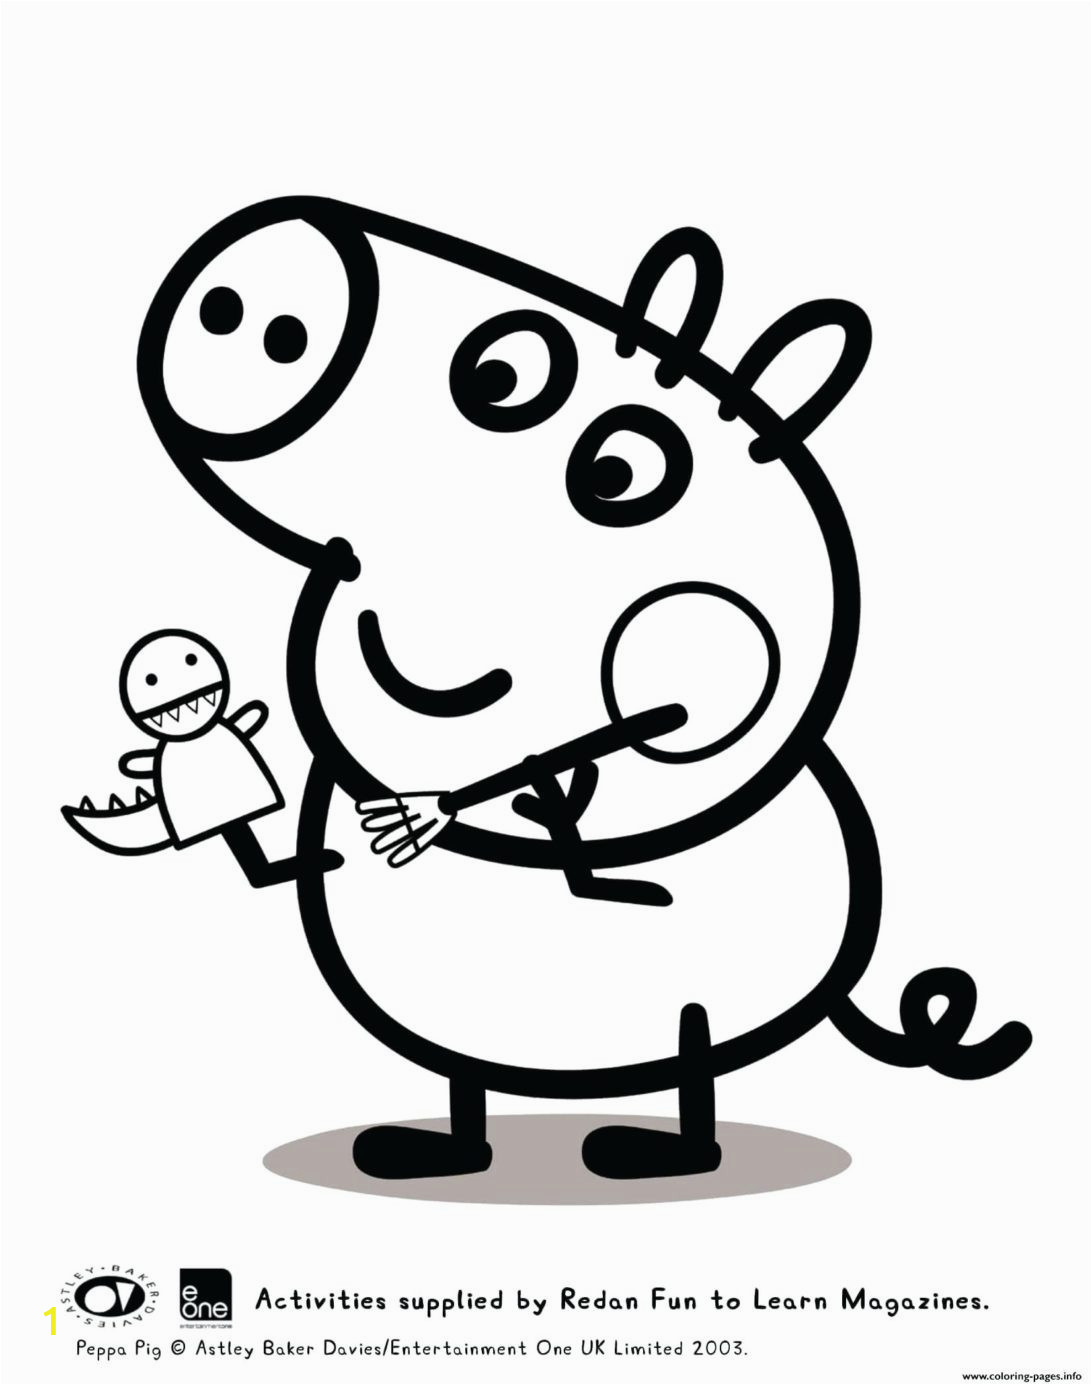 toy story coloring pages free to print lovely top 24 hunky dory playing pig coloring pages printable peppa of toy story coloring pages free to print